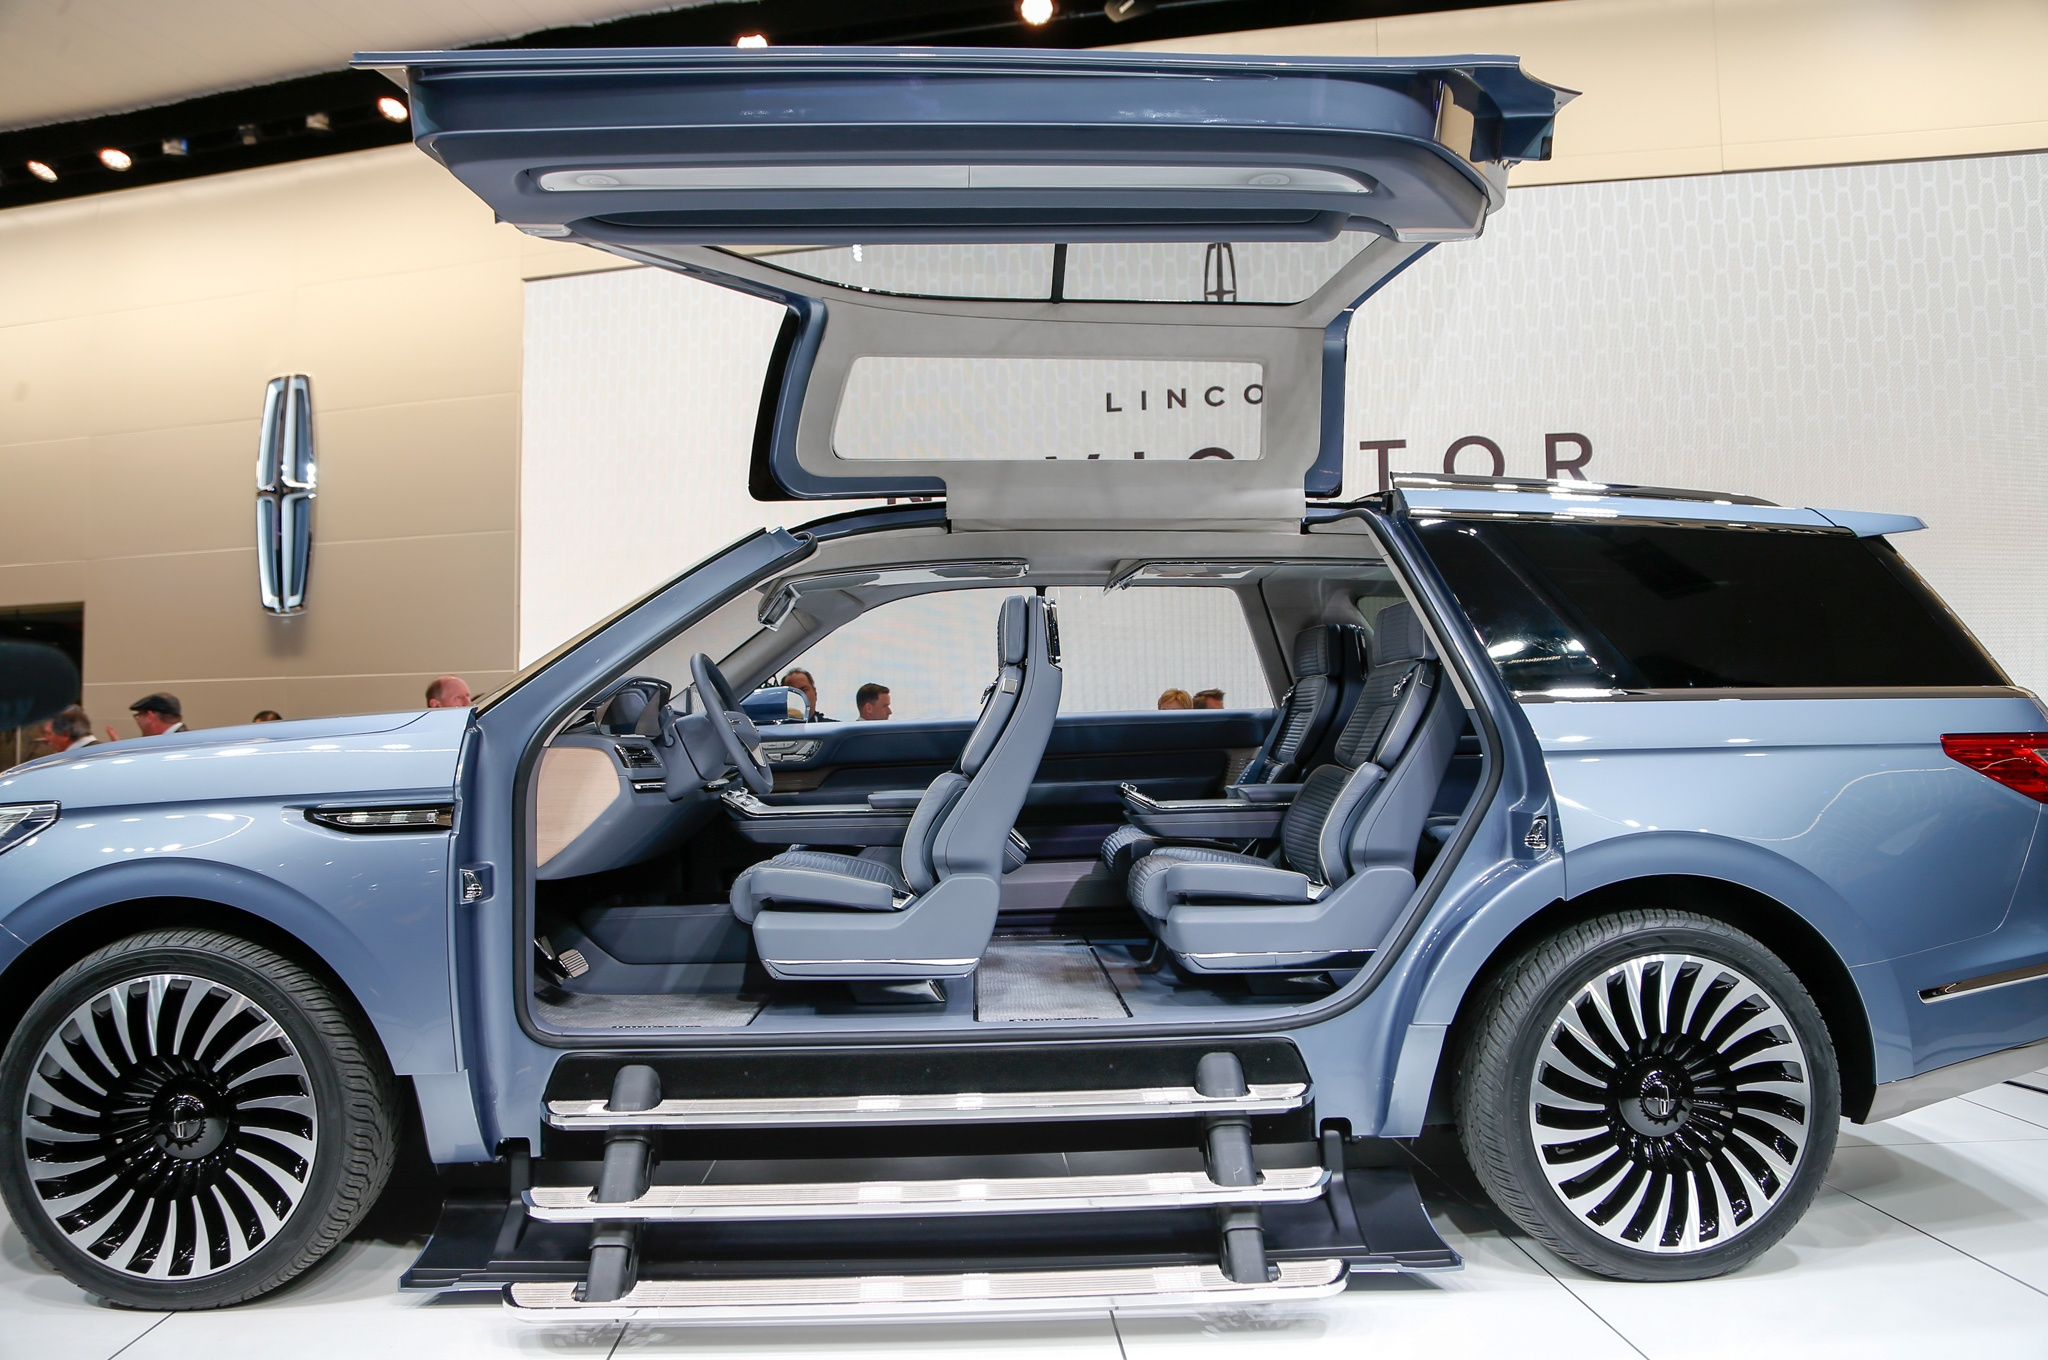 Lincoln-Navigator-concept-on-show-floor-gullwing-doors-open.jpg